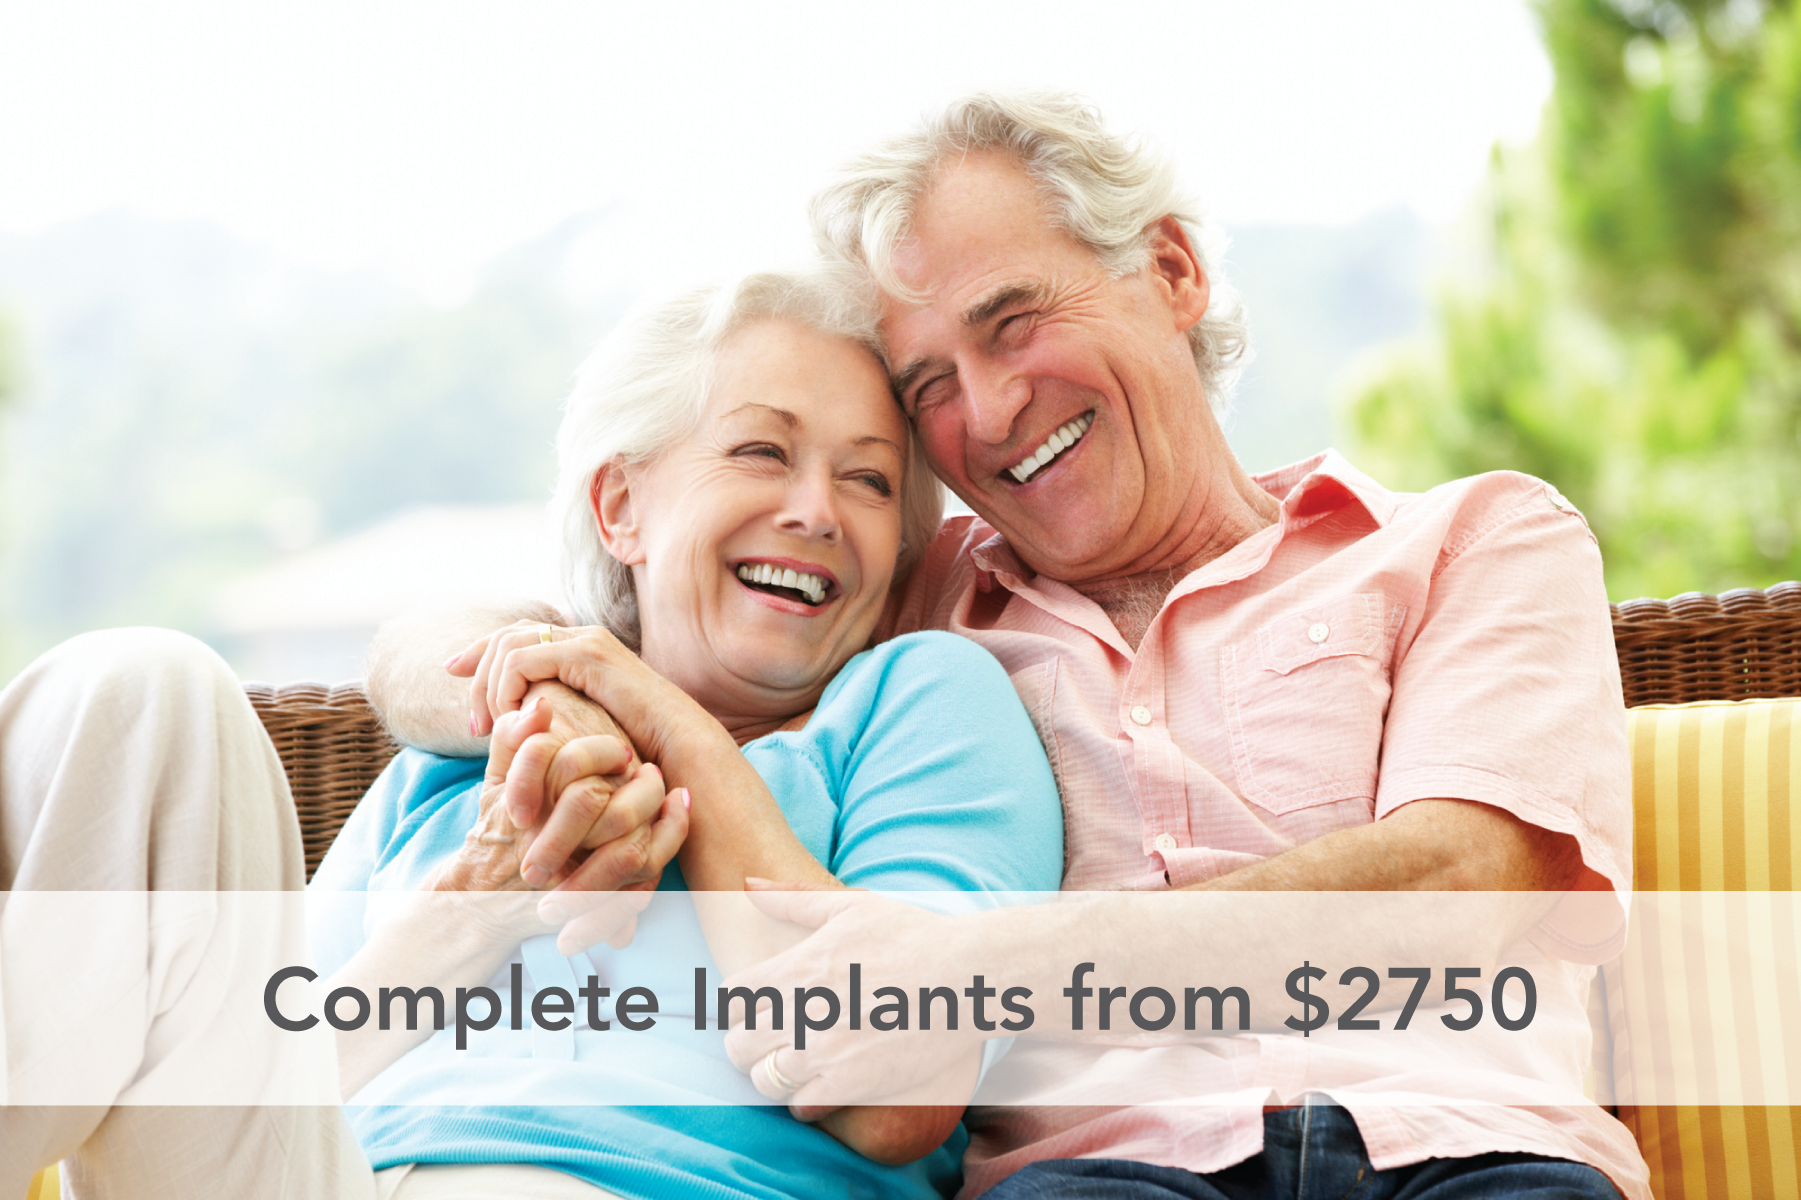 Implants from $2750